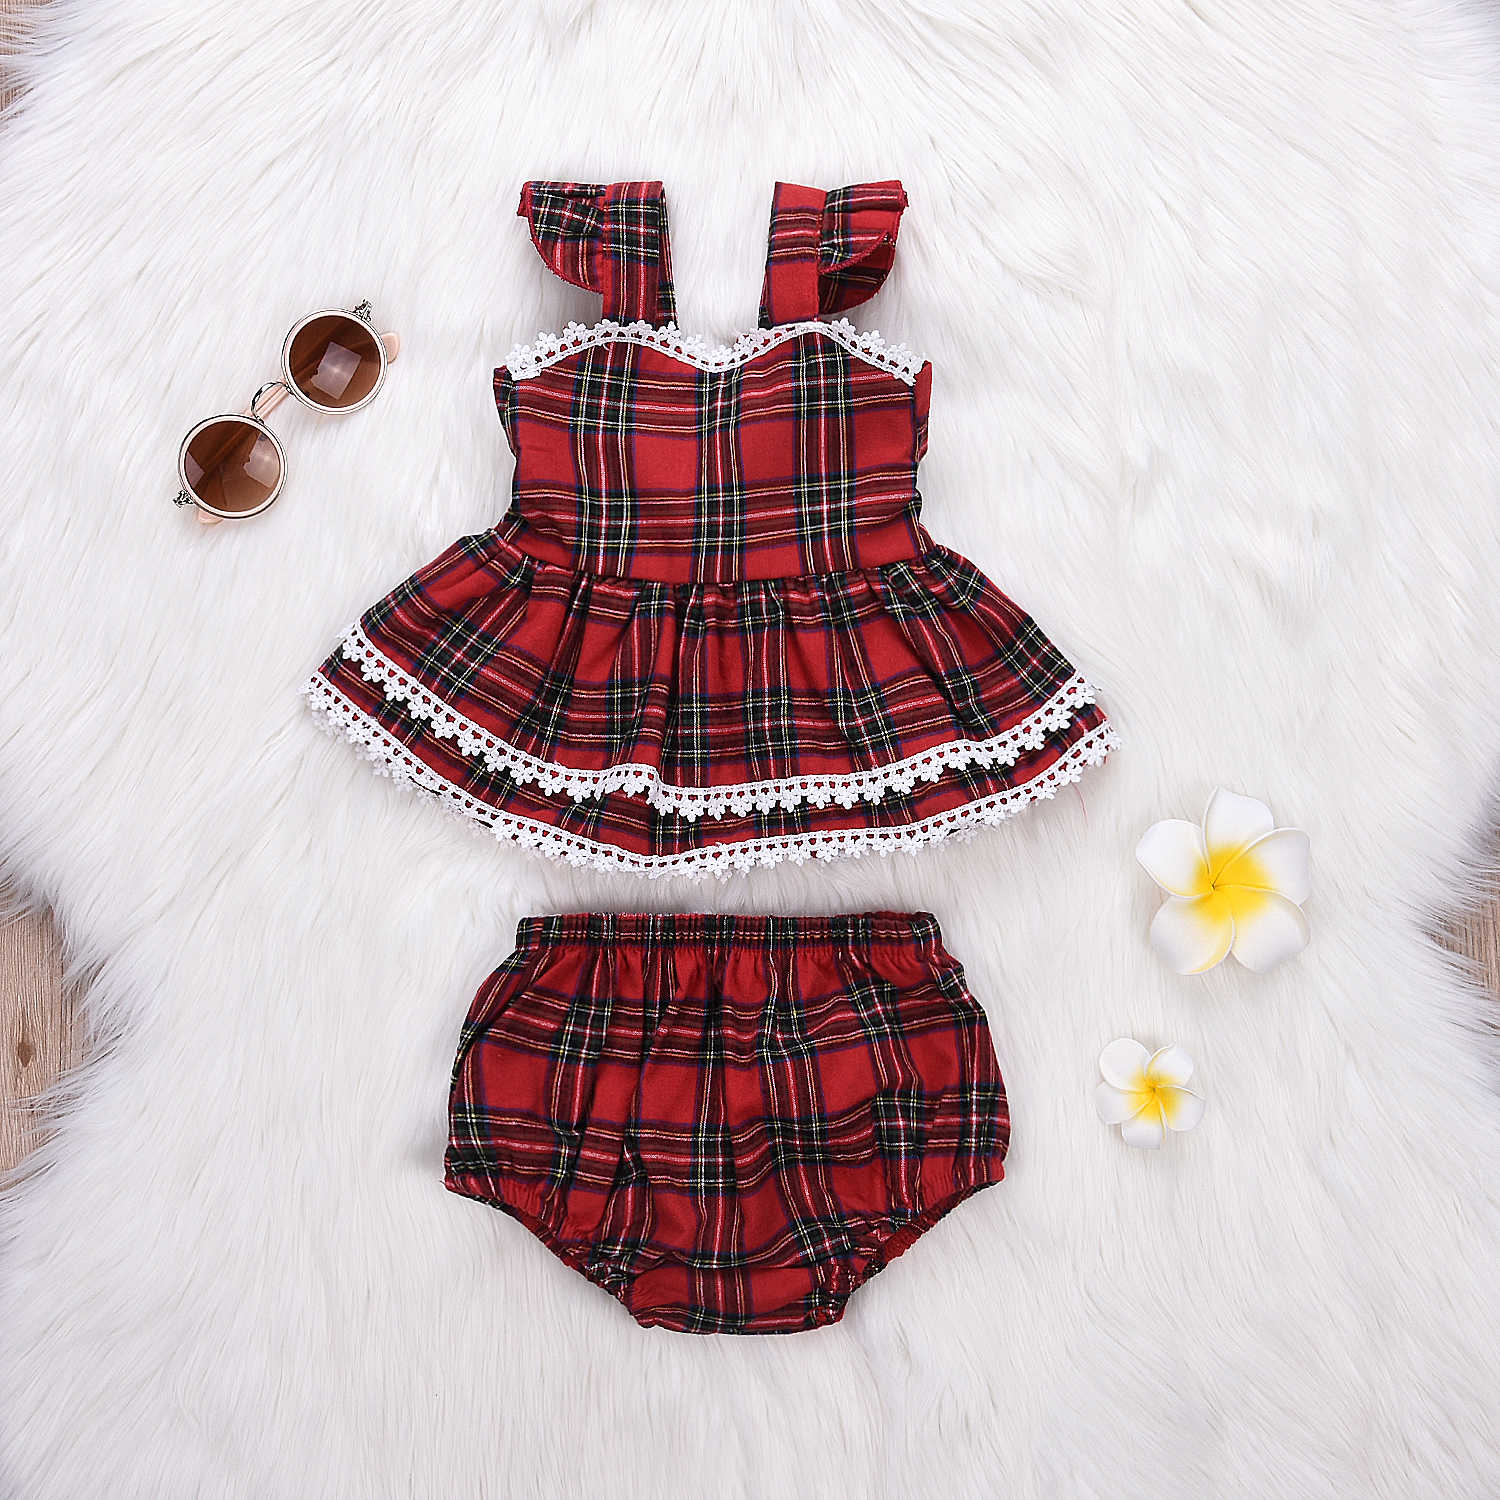 Cheap Baby Clothes Au Au Toddler Kids Baby Girls Outfits Clothes Red Plaid T Shirt Tops Dress Bottom Pants Set For 3 Month To 3 Years Yc